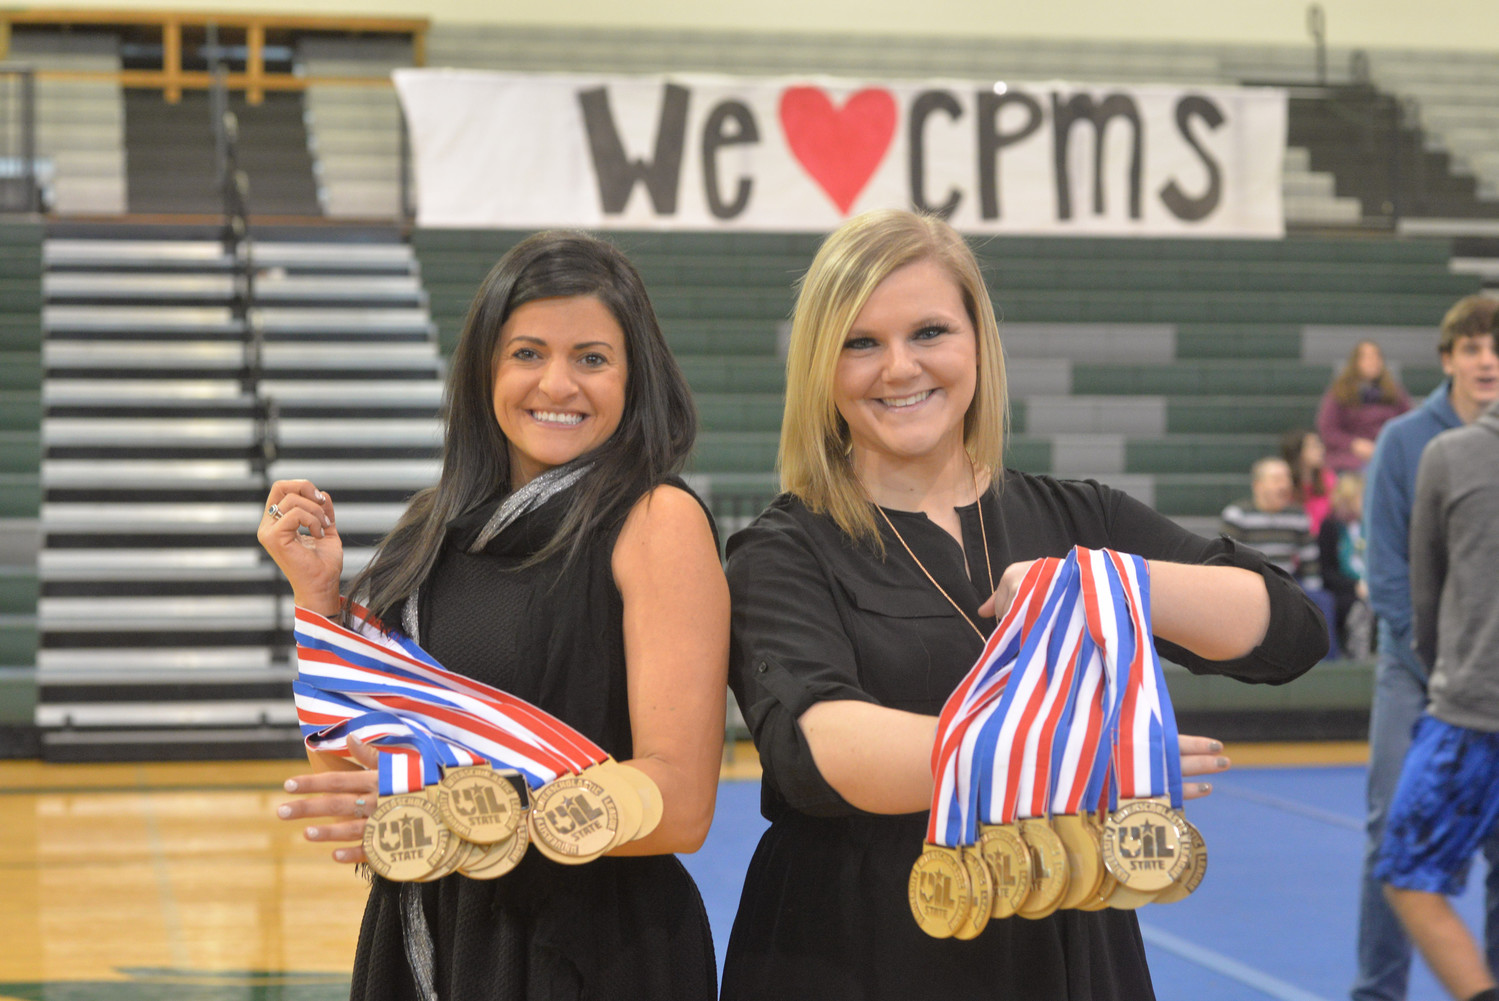 Cedar Park cheer sponsors Nadira King and Morgan Maddux hold UIL Spirit State championship medals at the CPHS cheer rally celebrating the team's state title, Tuesday, Jan. 23.